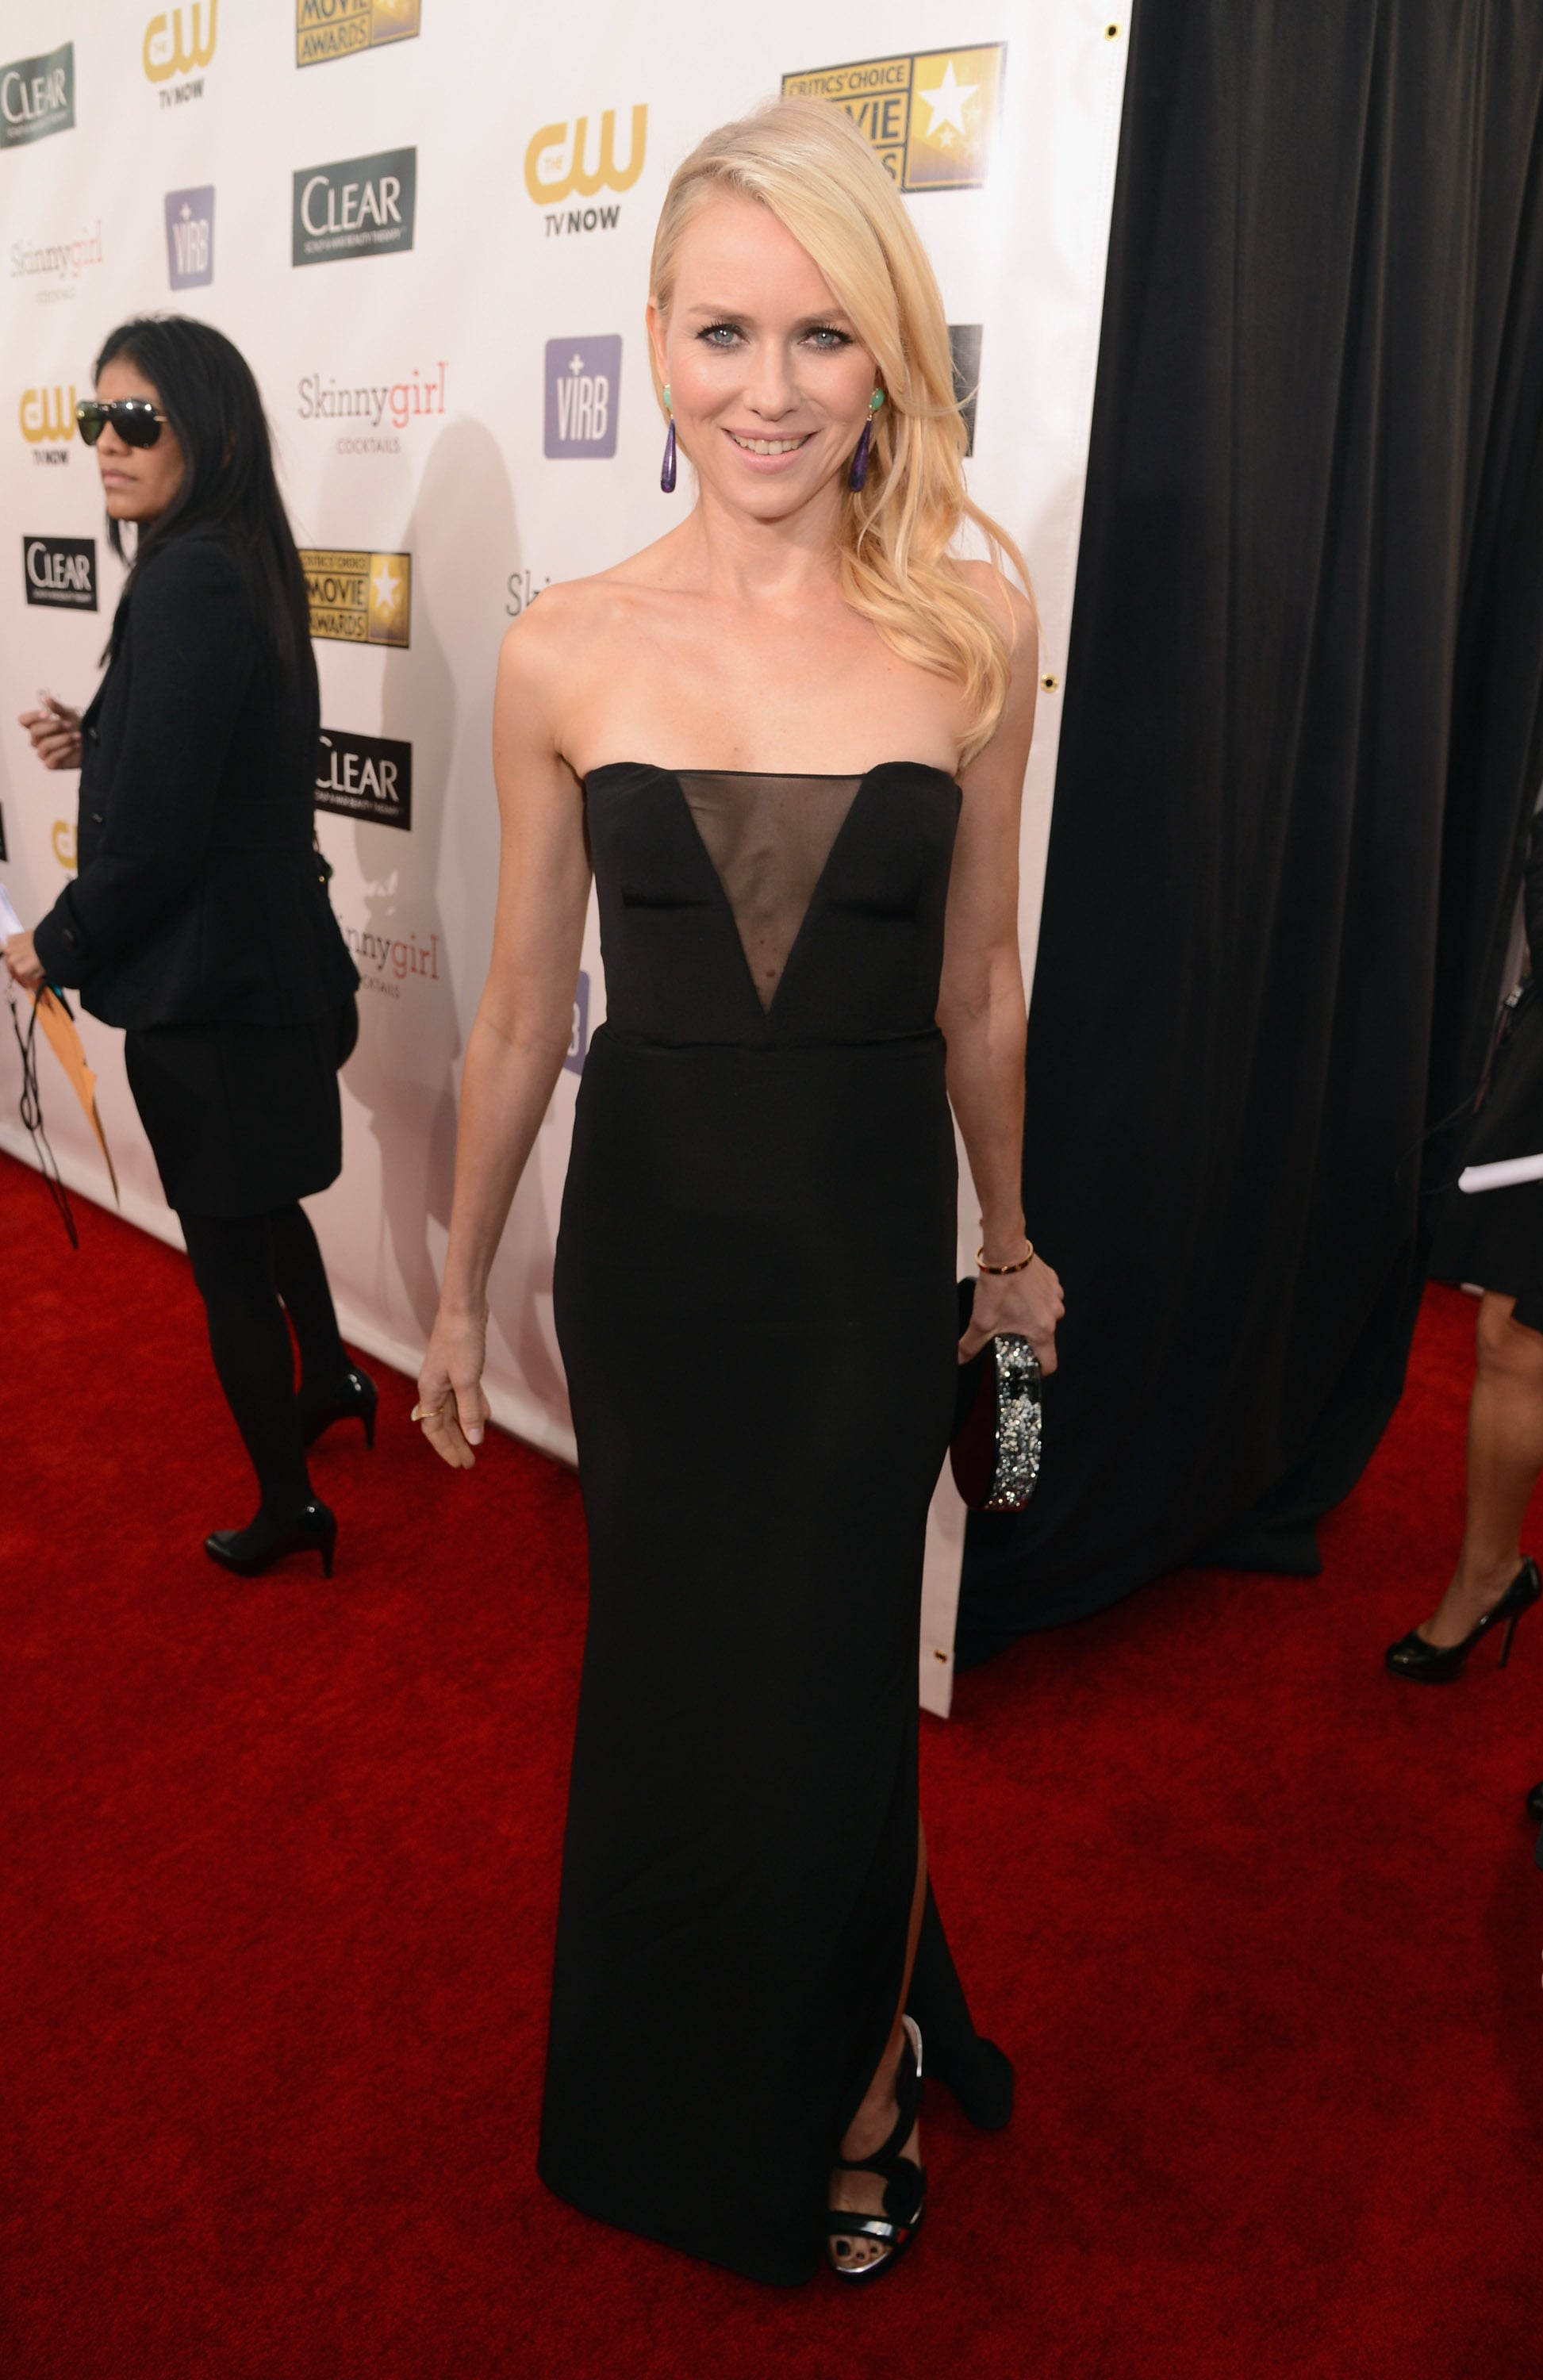 At the 2013 Critics' Choice Awards, Naomi Watts's black Emilio Pucci gown got a hint of shine via her black and silver Nicholas Kirkwood sandals, which peeped out from under her sexy side slit.